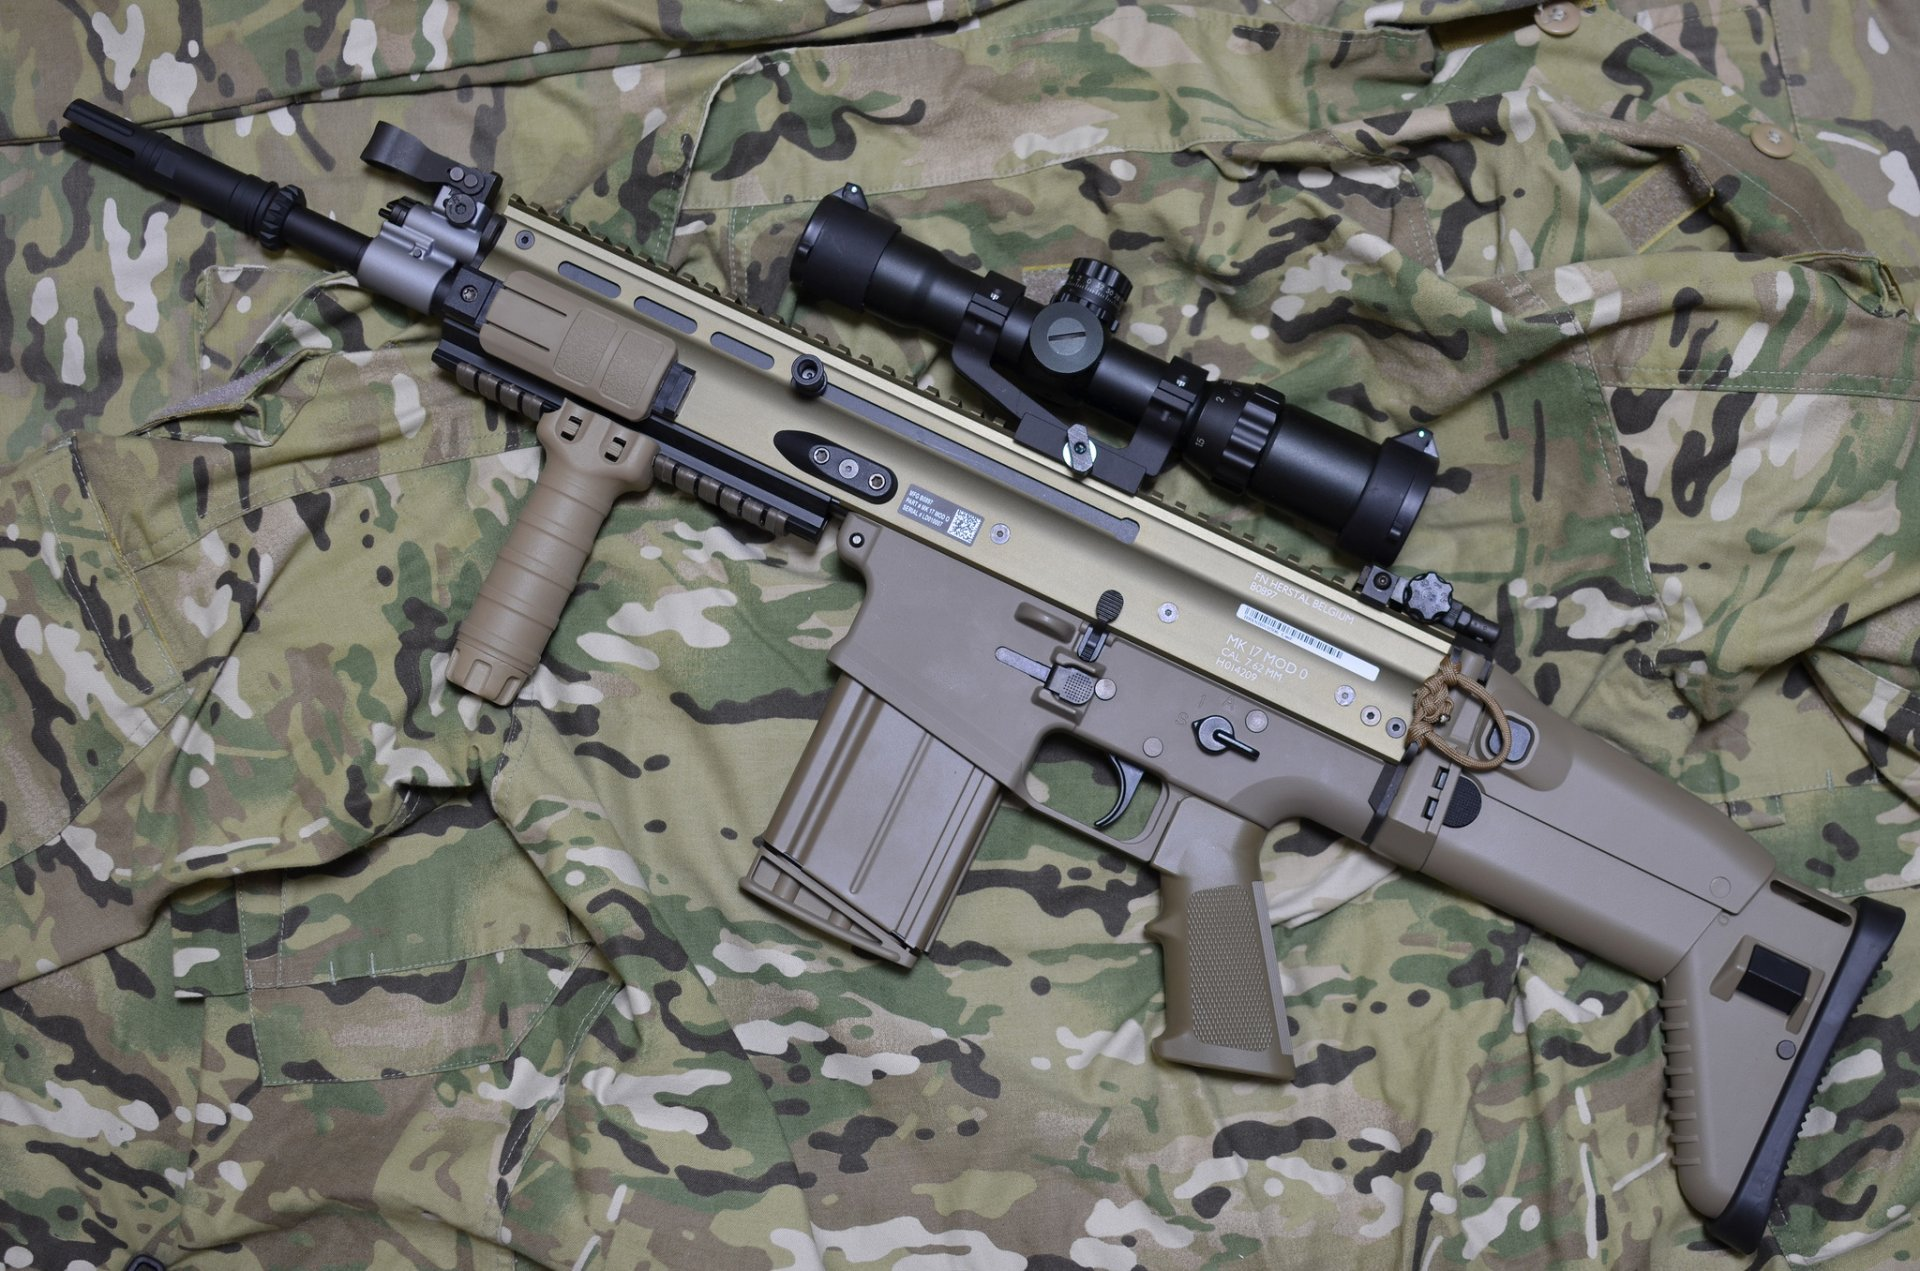 Fn Scar Rifle Hd Wallpapers